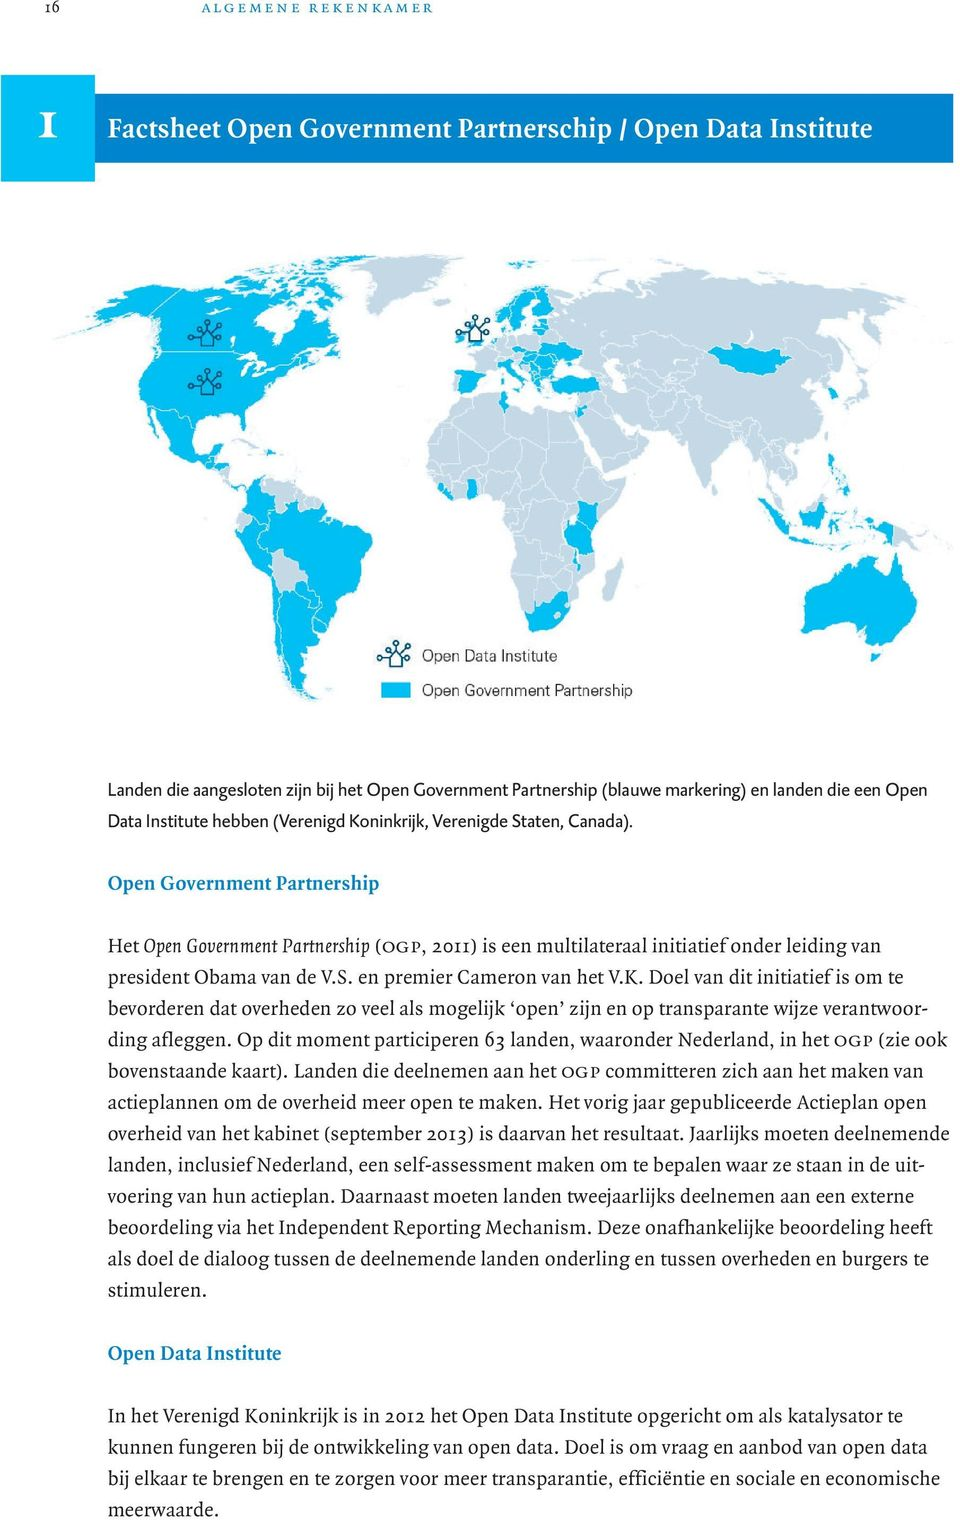 Open Government Partnership Het Open Government Partnership (ogp, 2011) is een multilateraal initiatief onder leiding van president Obama van de V.S. en premier Cameron van het V.K.